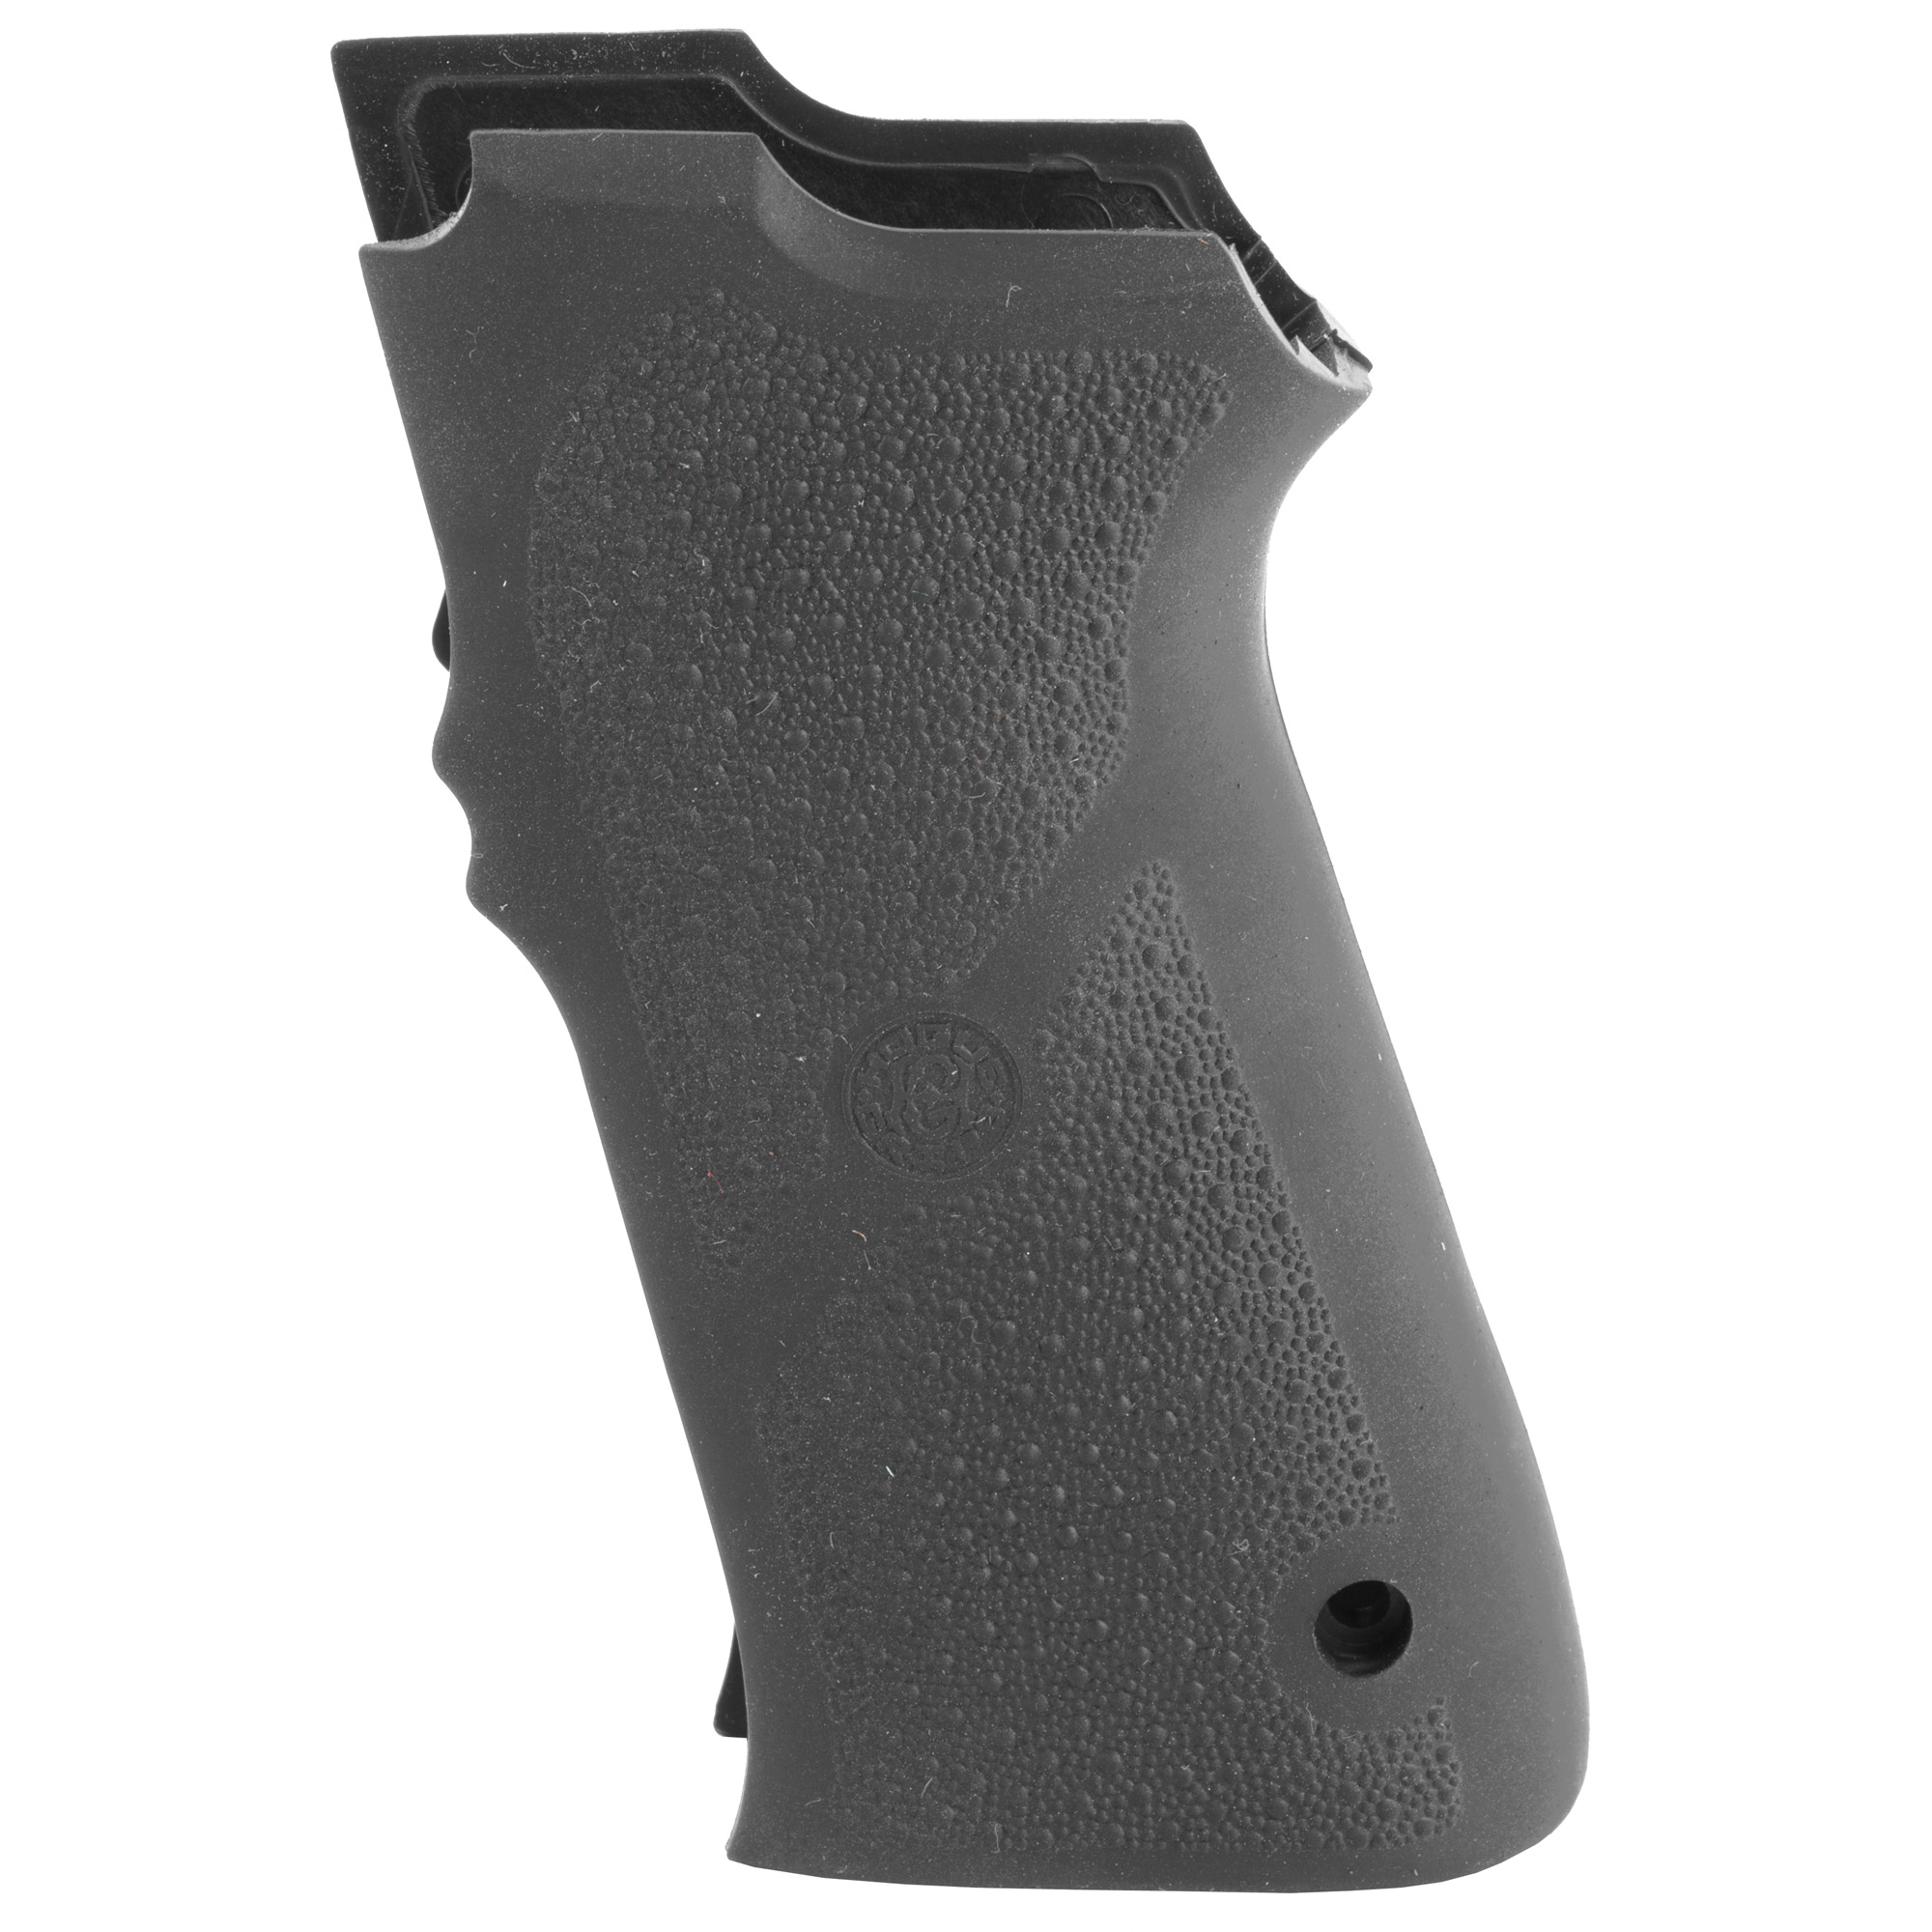 This grip is the S&W 5900 Series rubber grip panels. These grips are a two piece that replaces the one piece stock grip. These grips are a straight backstrap design that installs using a mainspring retainer and screws which come with the grip. The mainspring retainer is pinned into position with the pin that holds the stock grip on. The mainspring retainer provides the threaded bosses that the grip panels screw into.